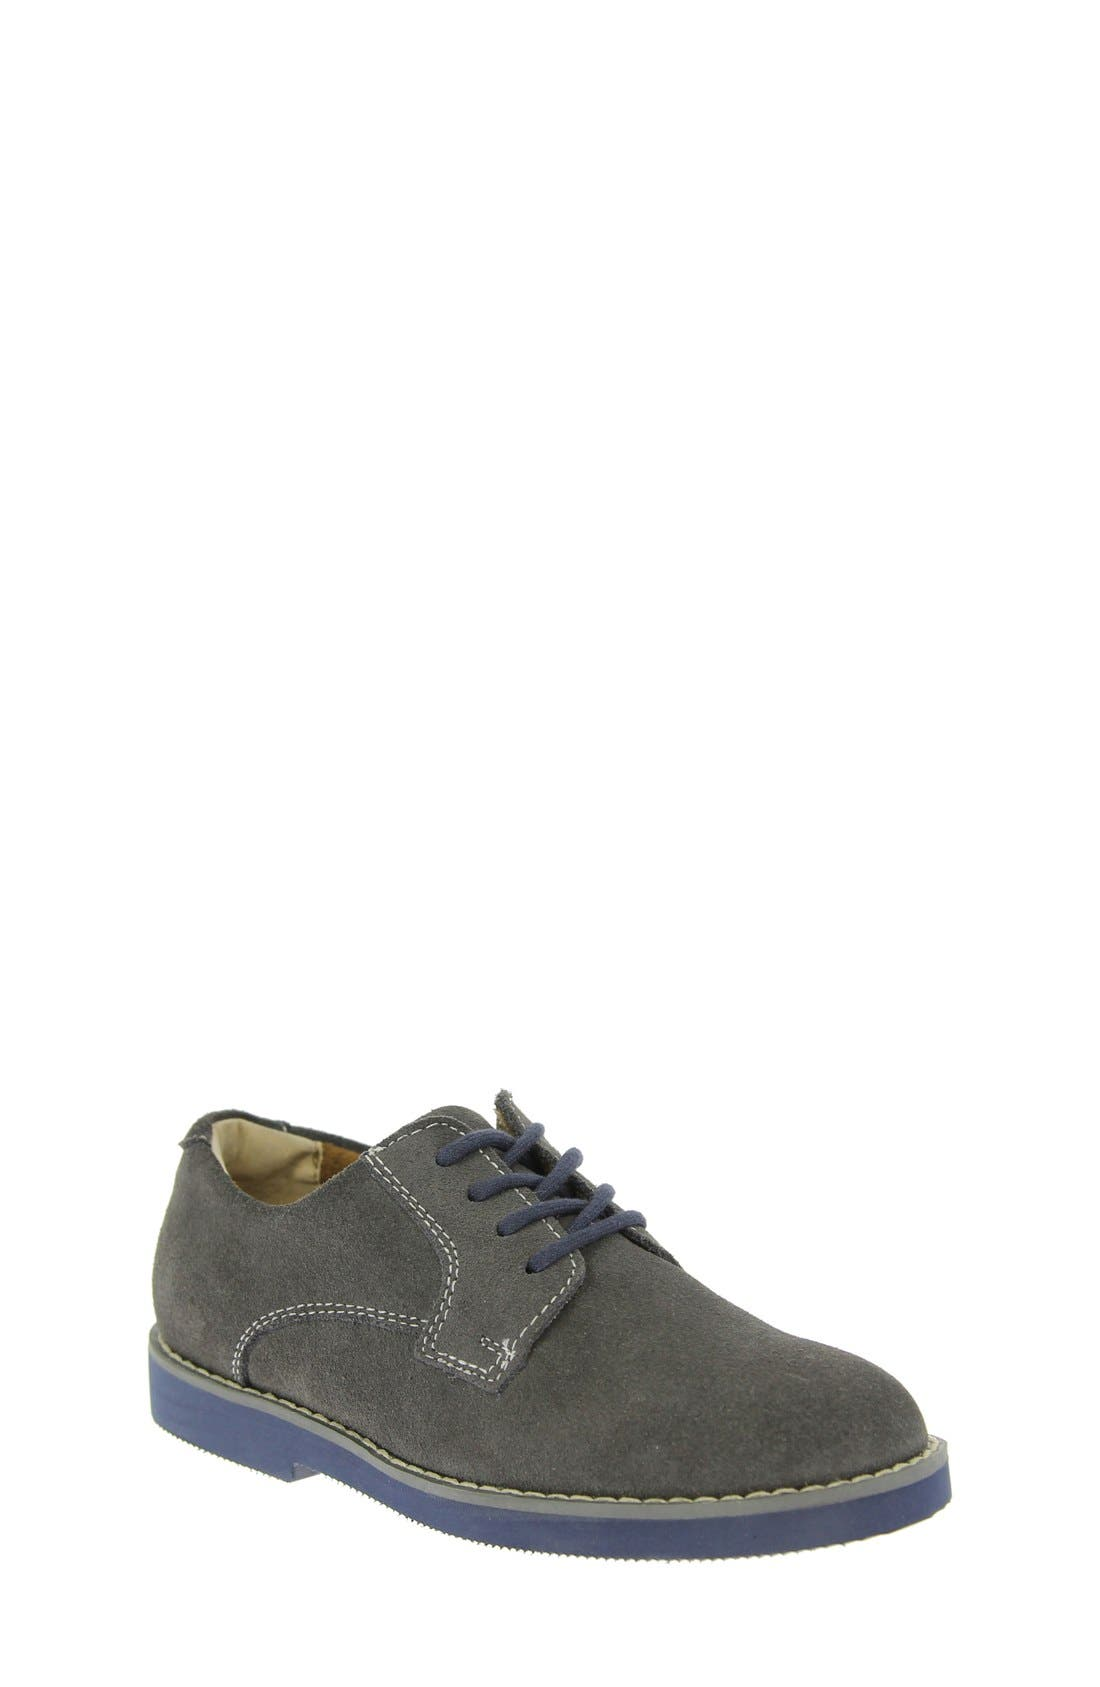 Kearny Two Tone Oxford,                         Main,                         color, GREY/ NAVY SOLE